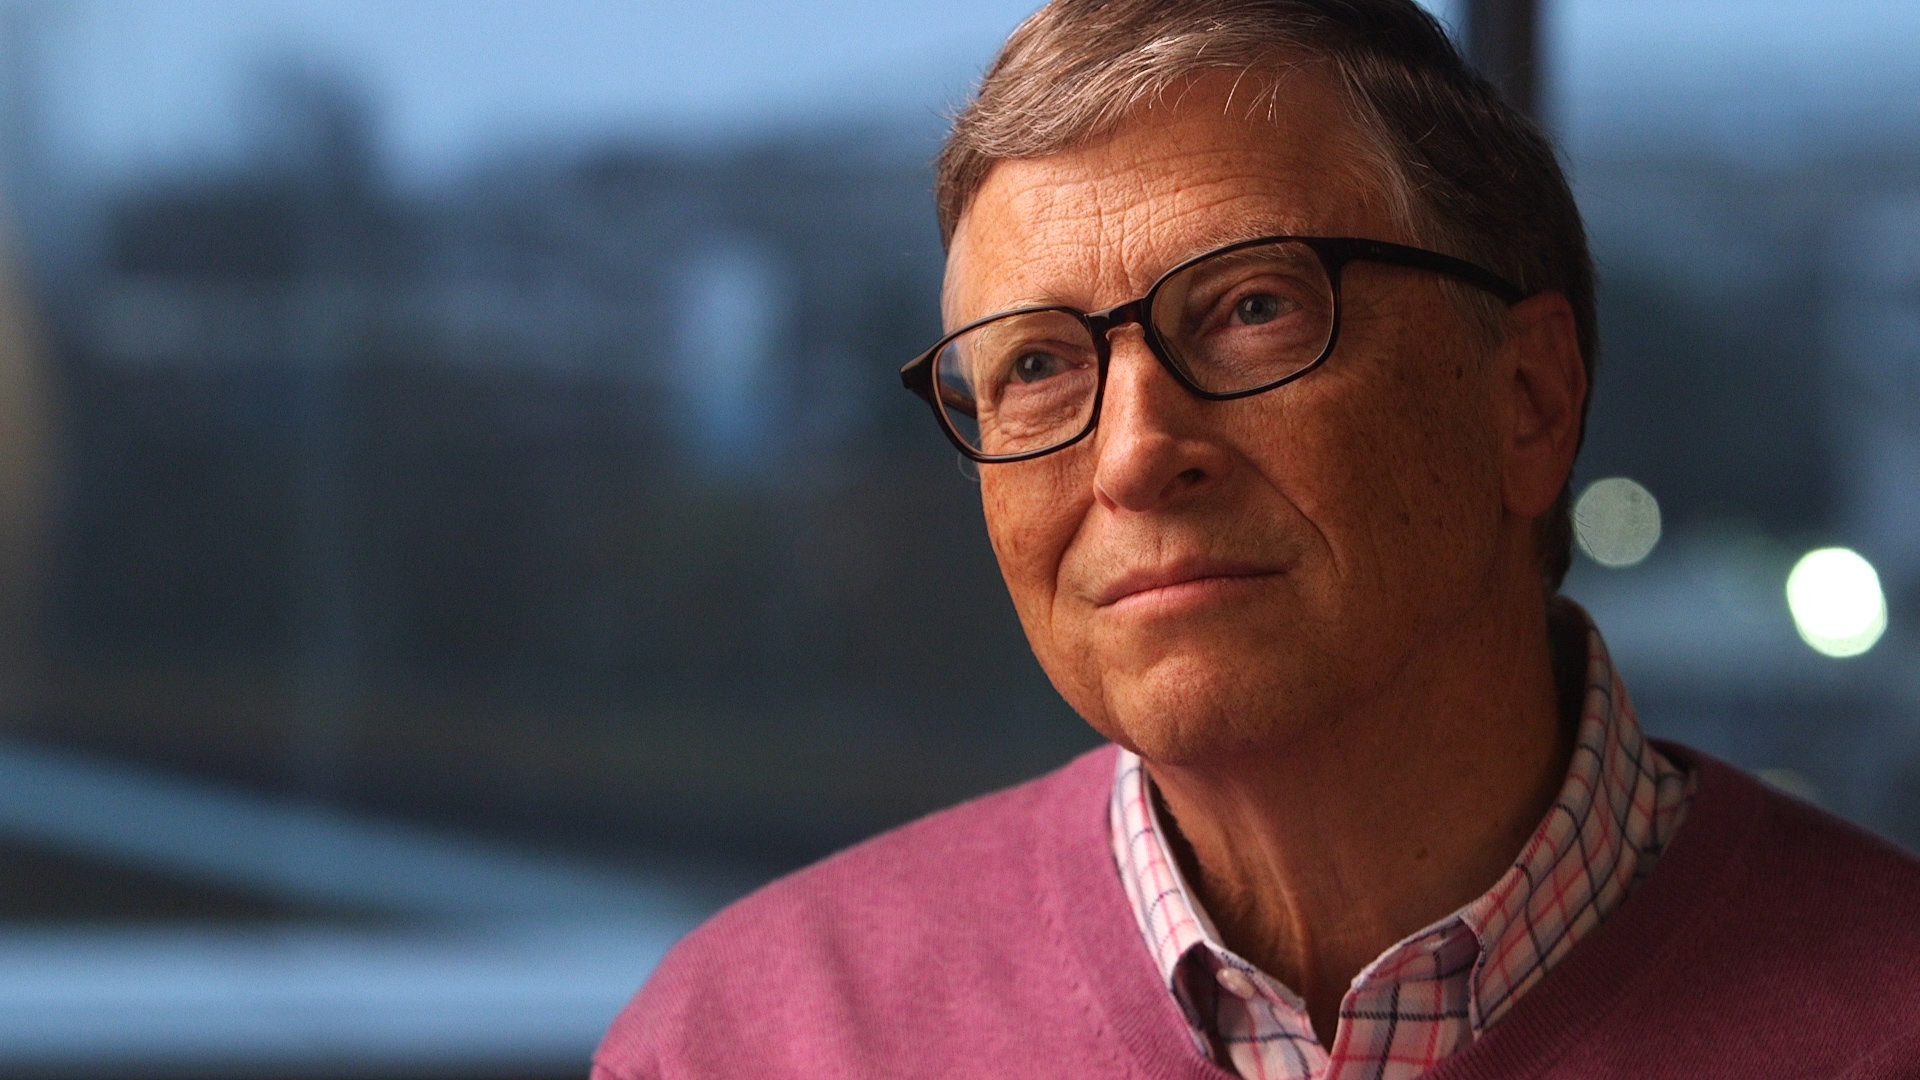 As of August 6, 2018, William Henry Gates III had a net worth of $95.4 billion, making him the second-richest person in the world, behind Jeff Bezos.